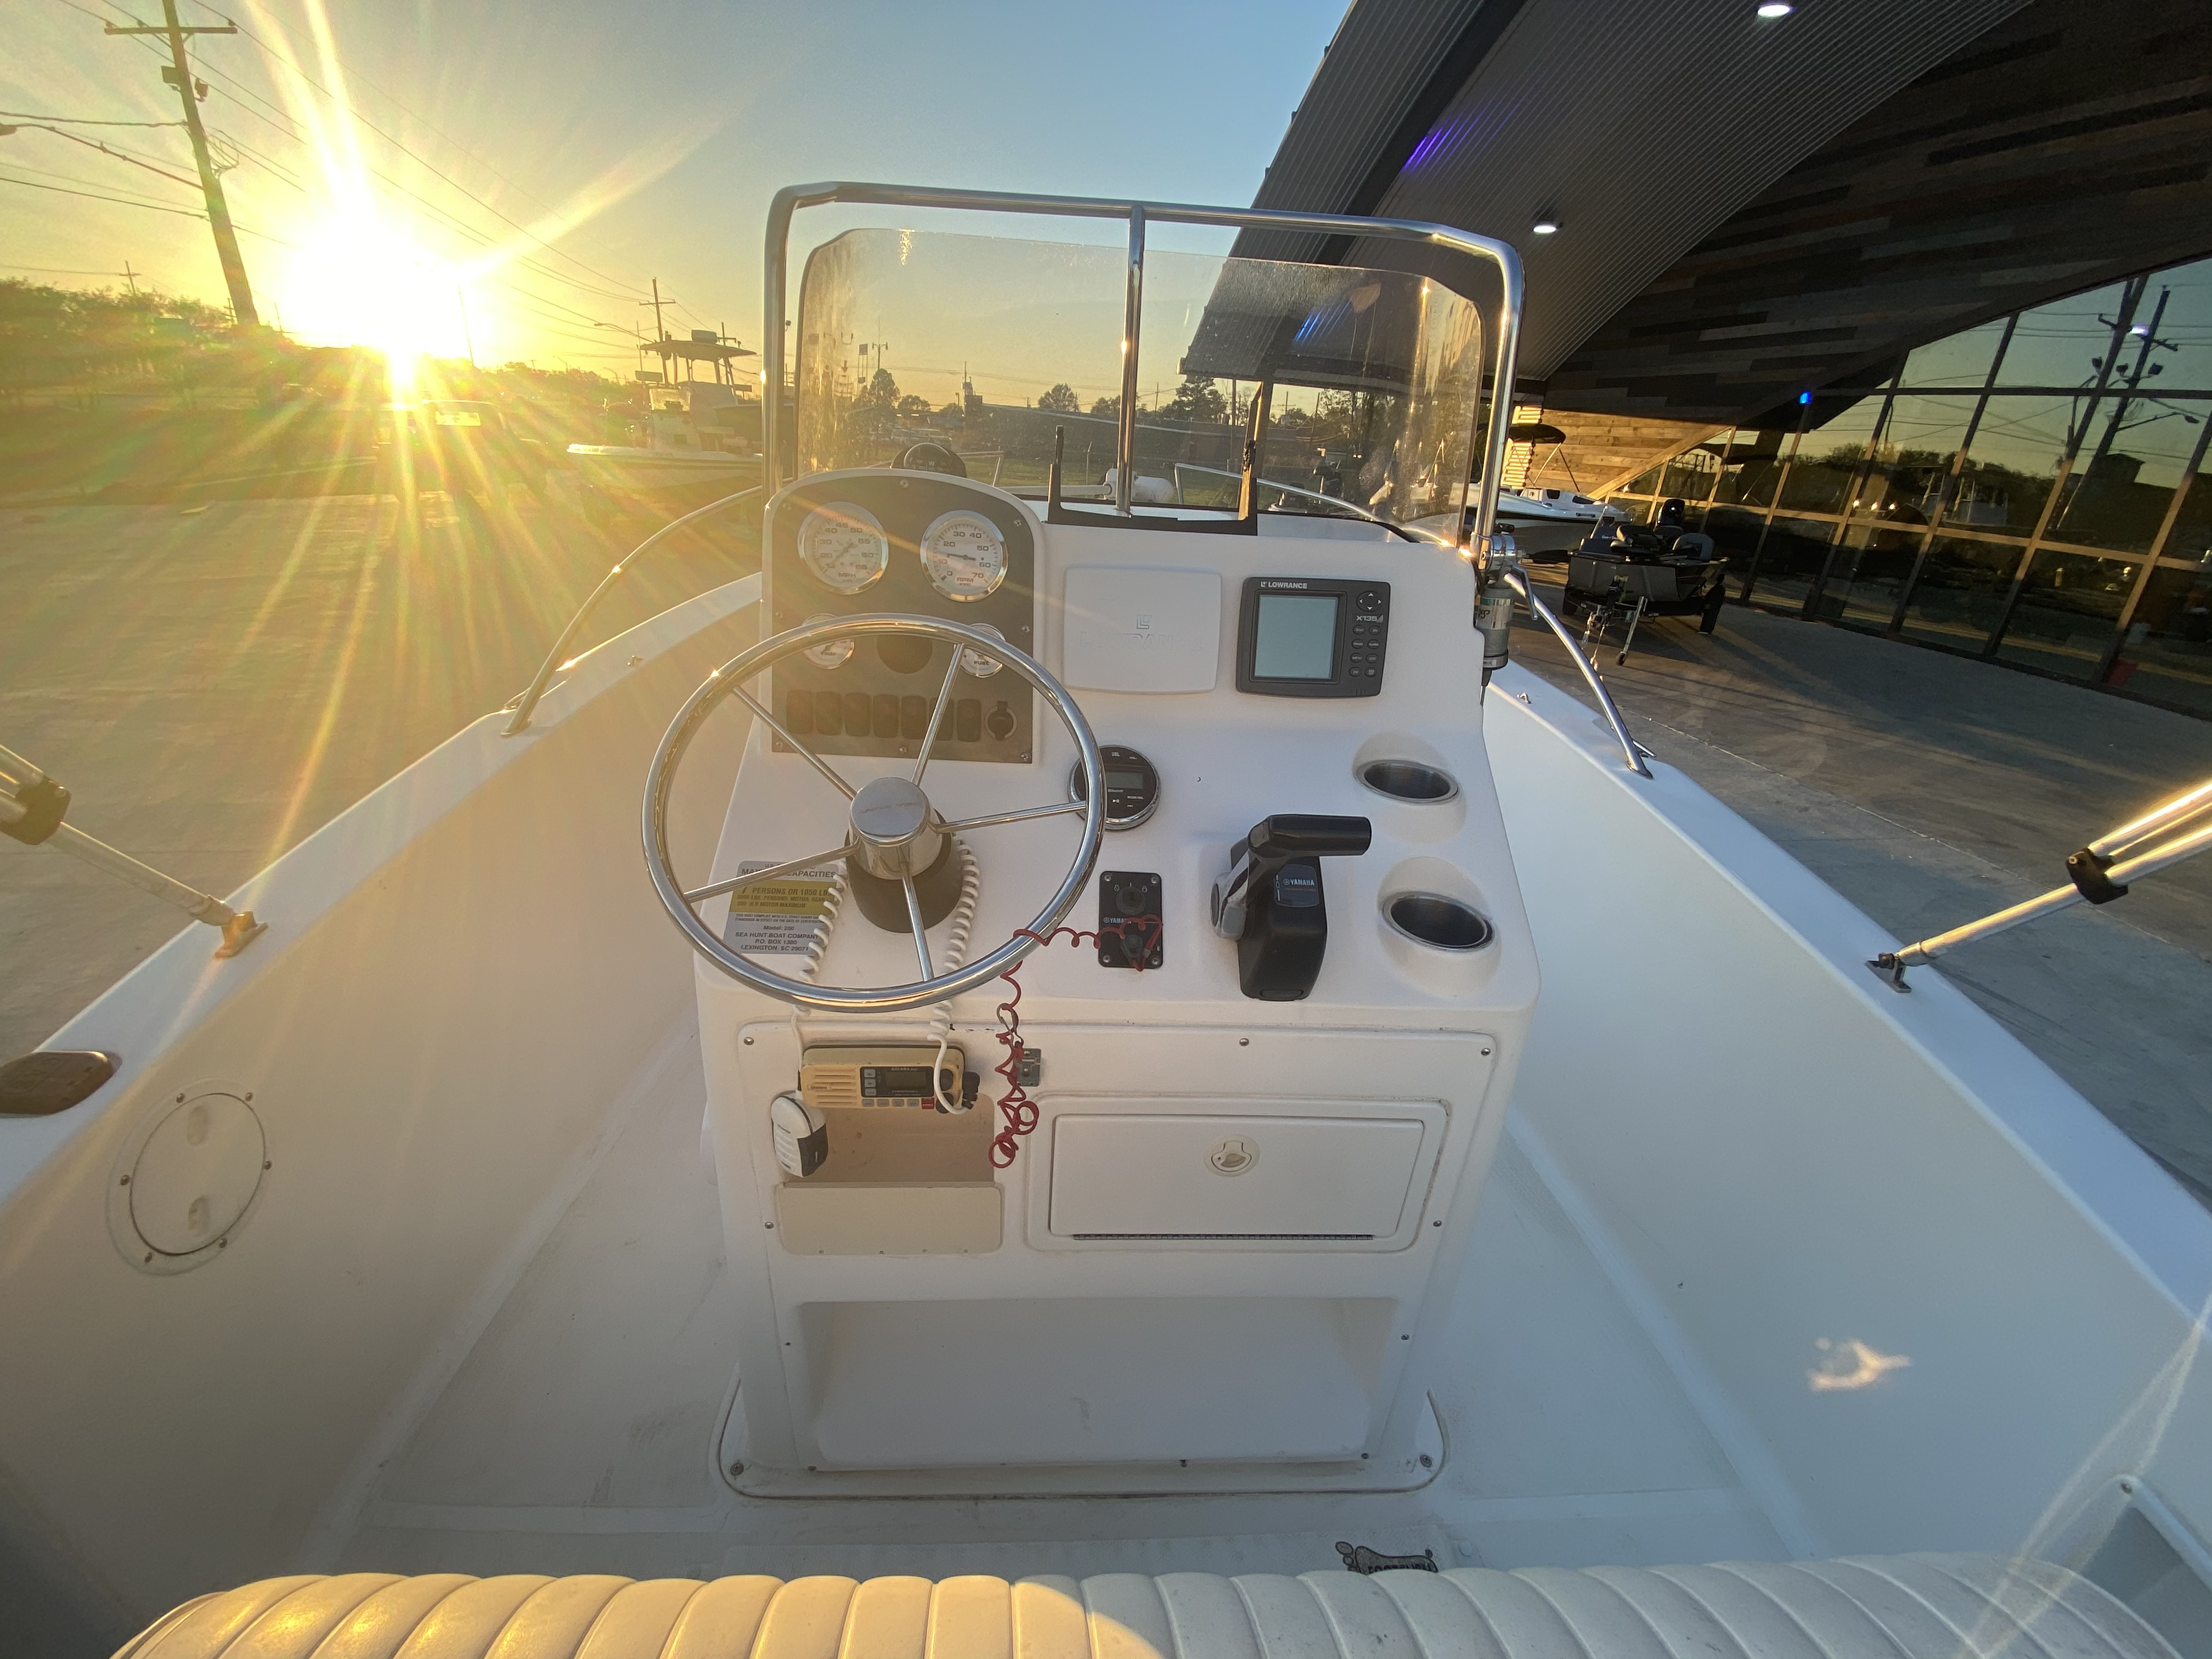 2007 Sea Hunt boat for sale, model of the boat is 207 Triton & Image # 4 of 28